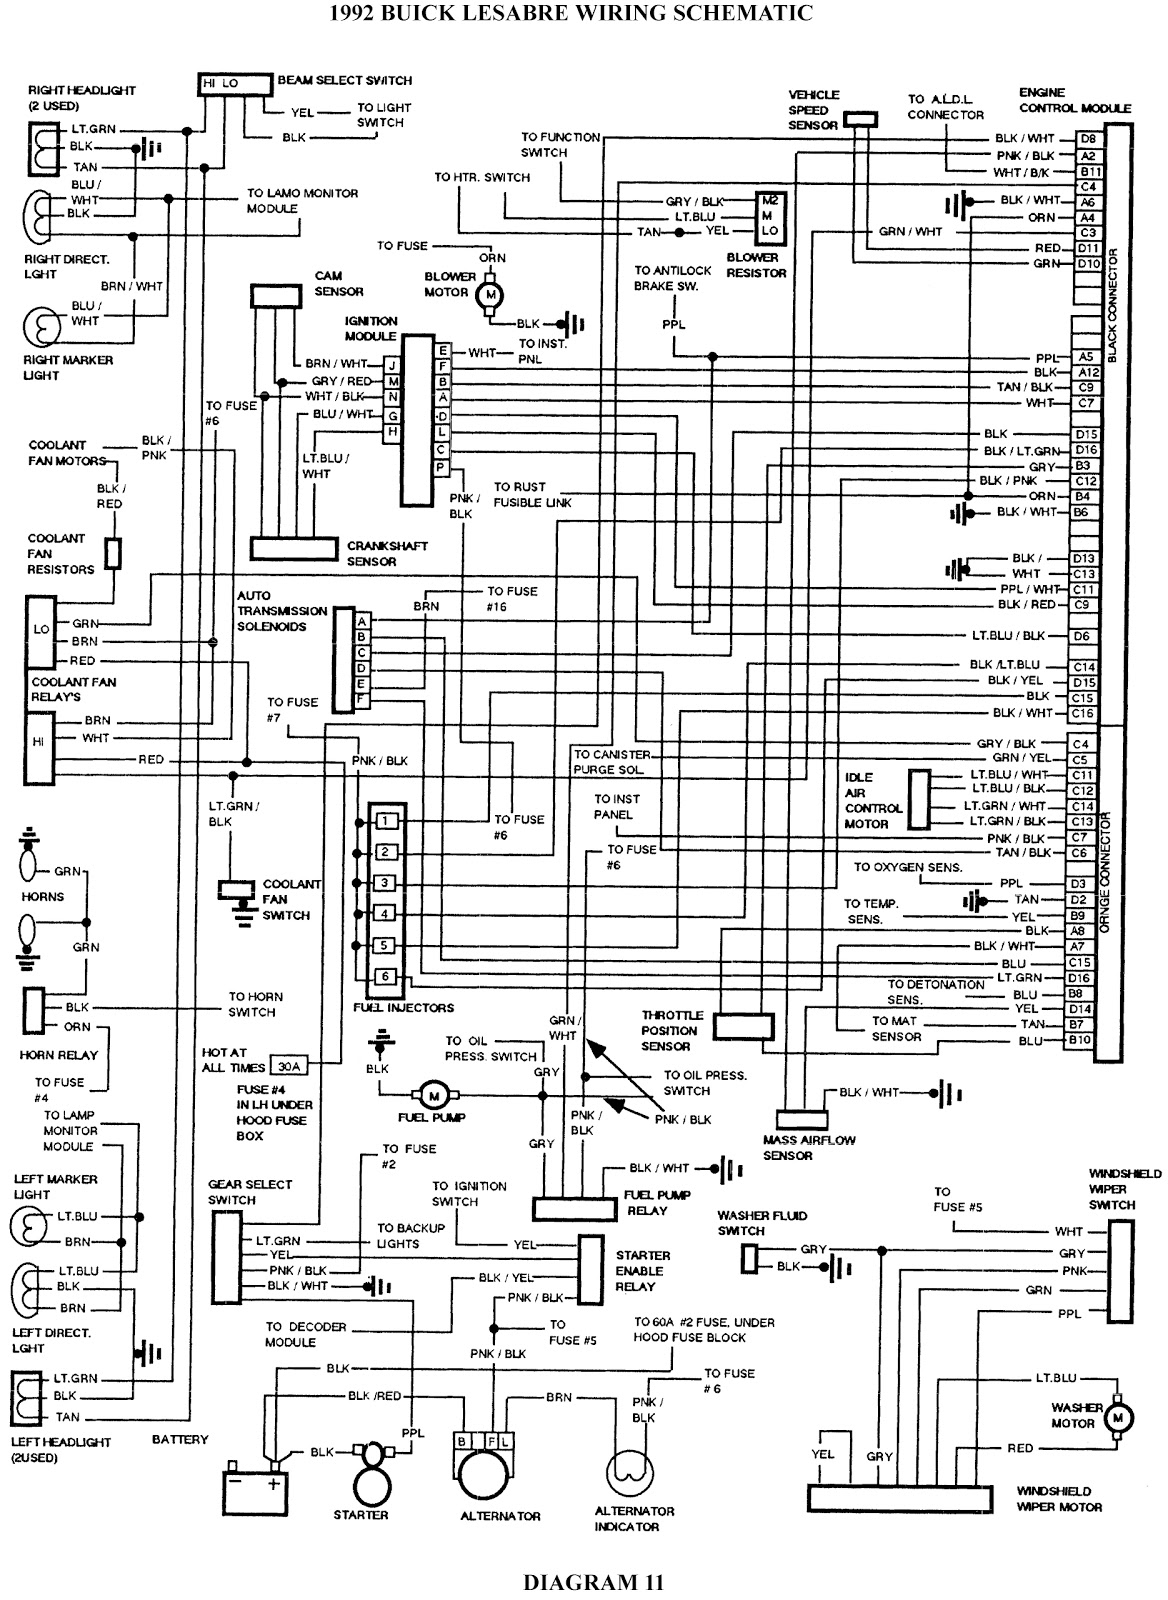 1997 buick lesabre wiring diagram 2002 chevy trailblazer factory stereo 1992 schematic